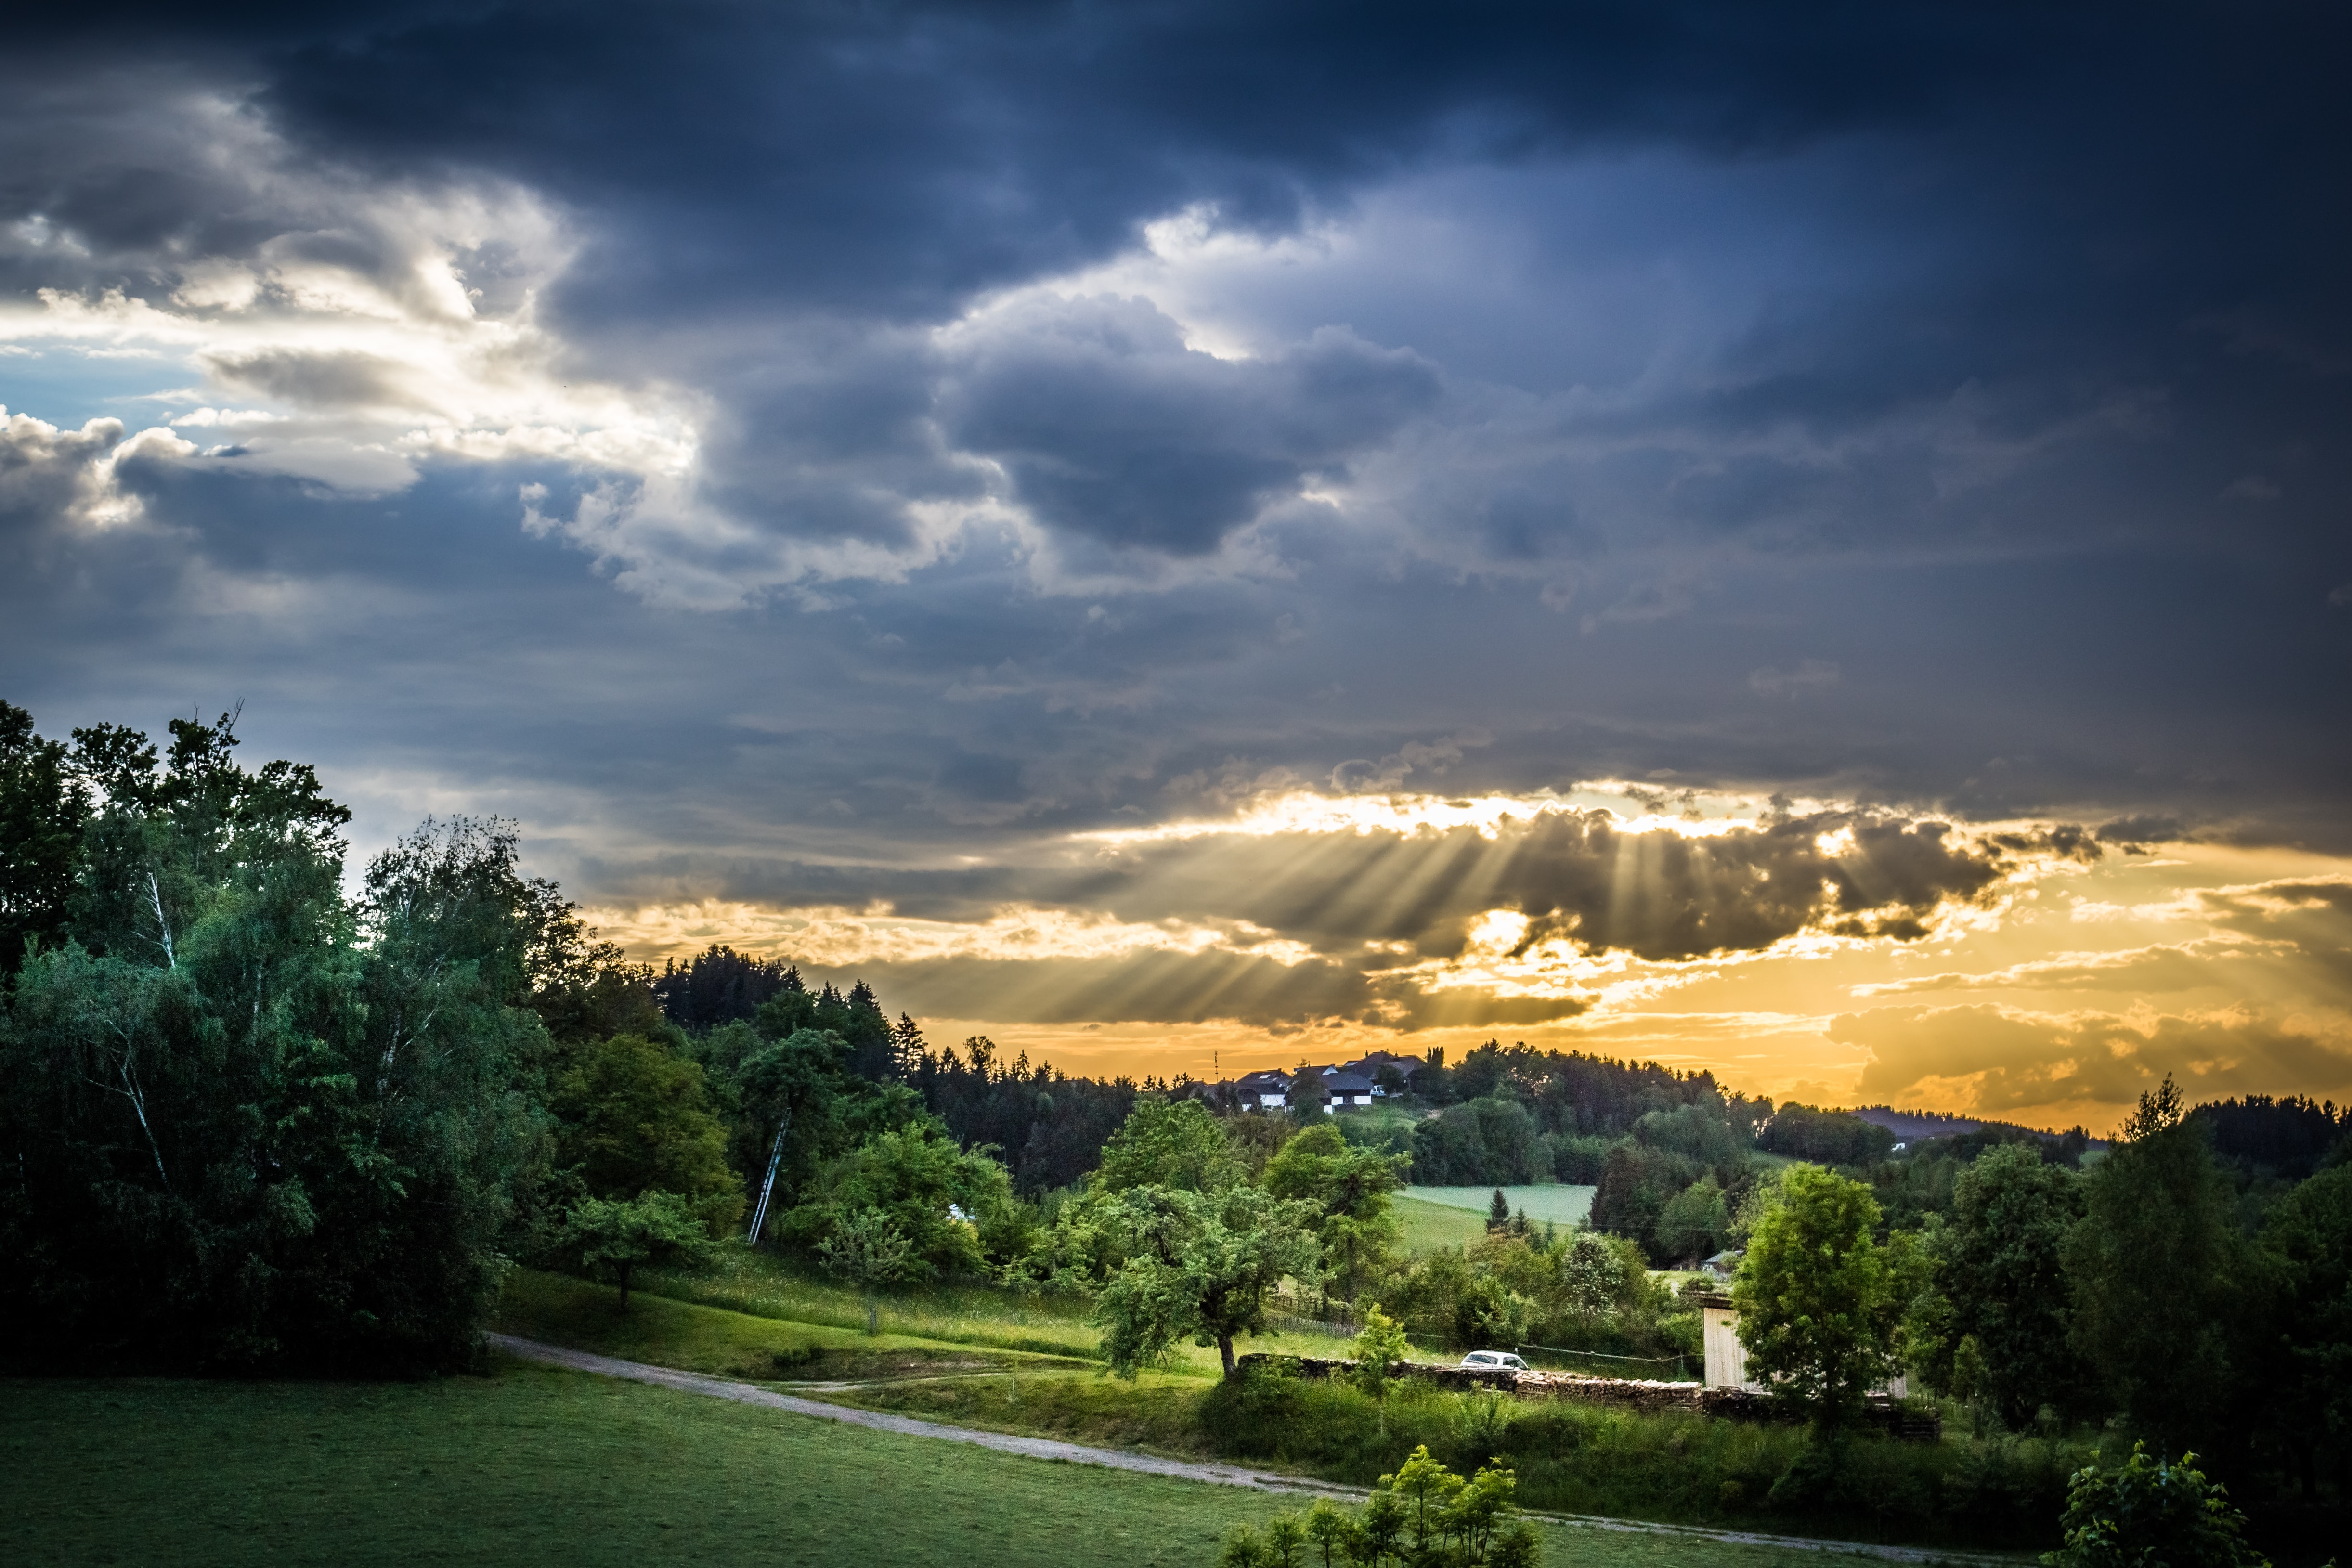 Sunbeams shine from storm clouds over a lush green farm field